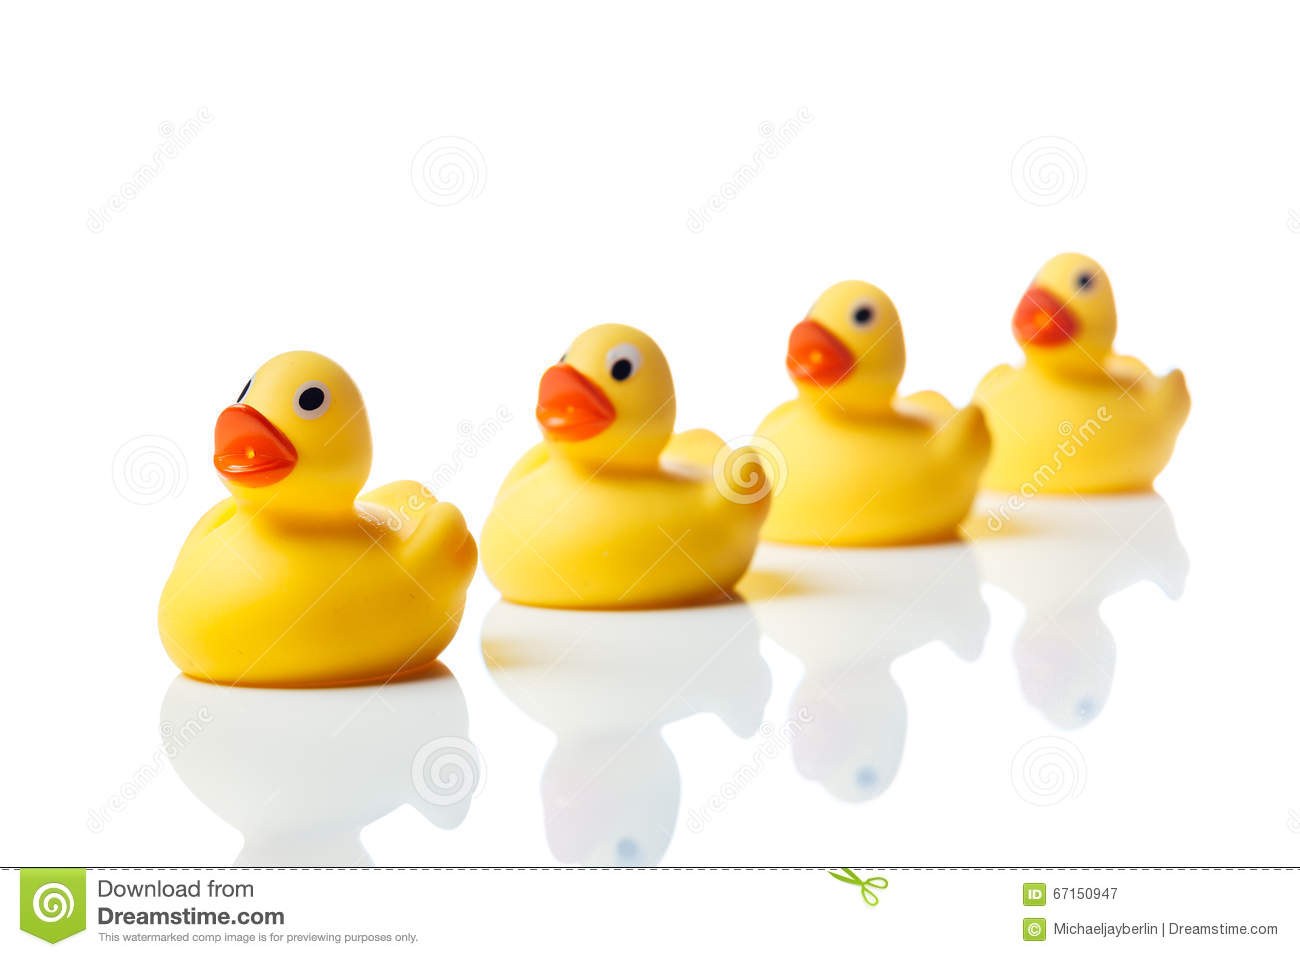 Toys For Groups : Group of yellow rubber duck toys stock photo image